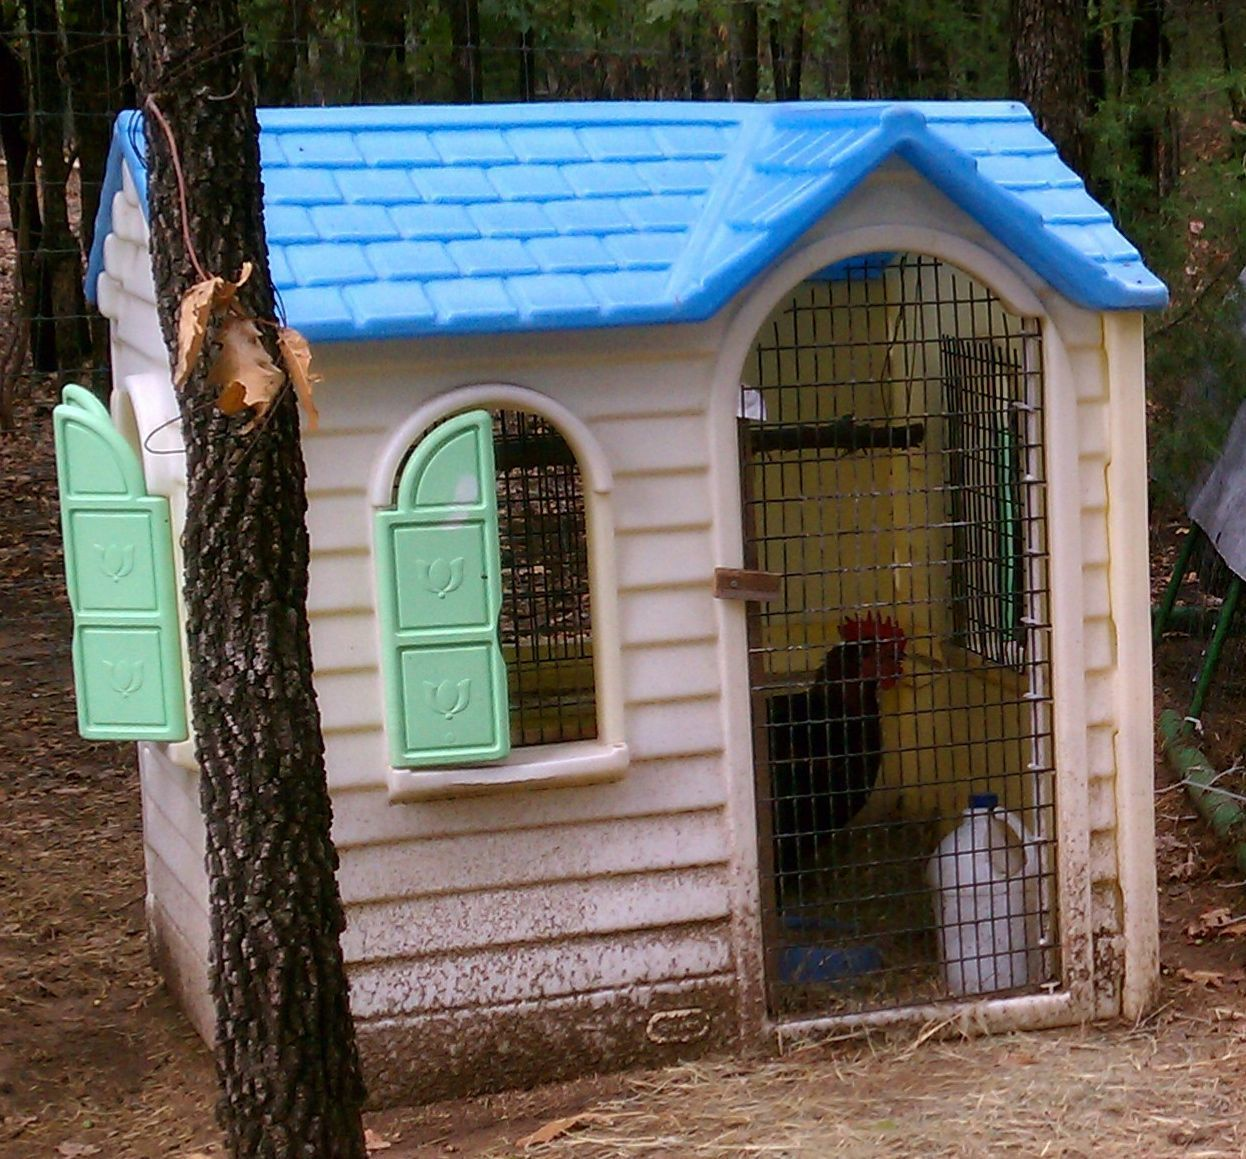 raising chickens on a shoestring   backyard chickens community